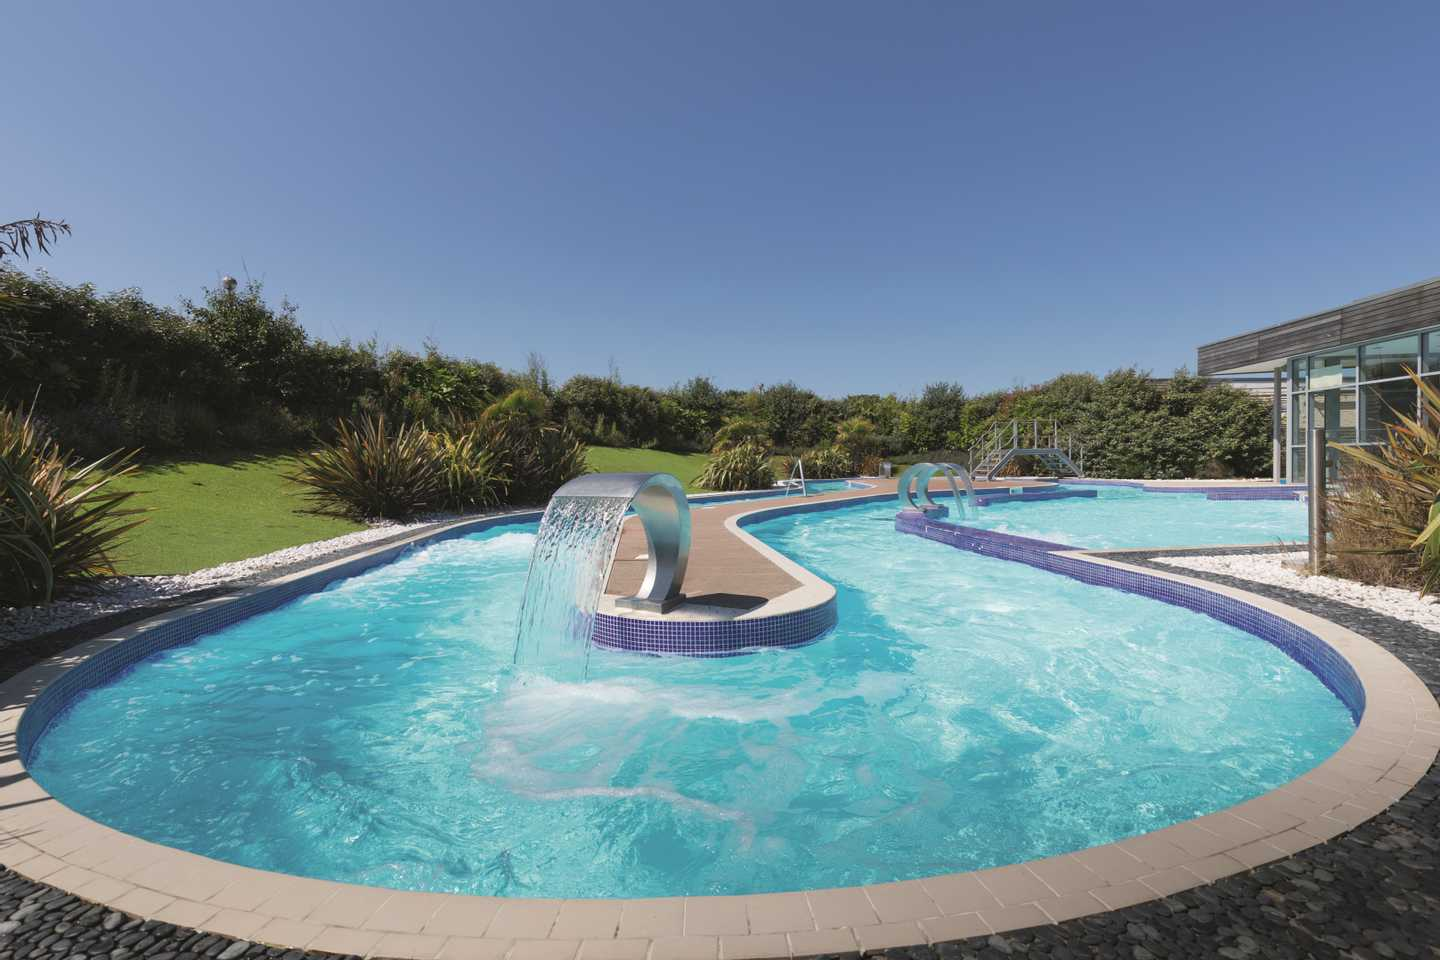 Heated outdoor lazy river at Reighton Sands